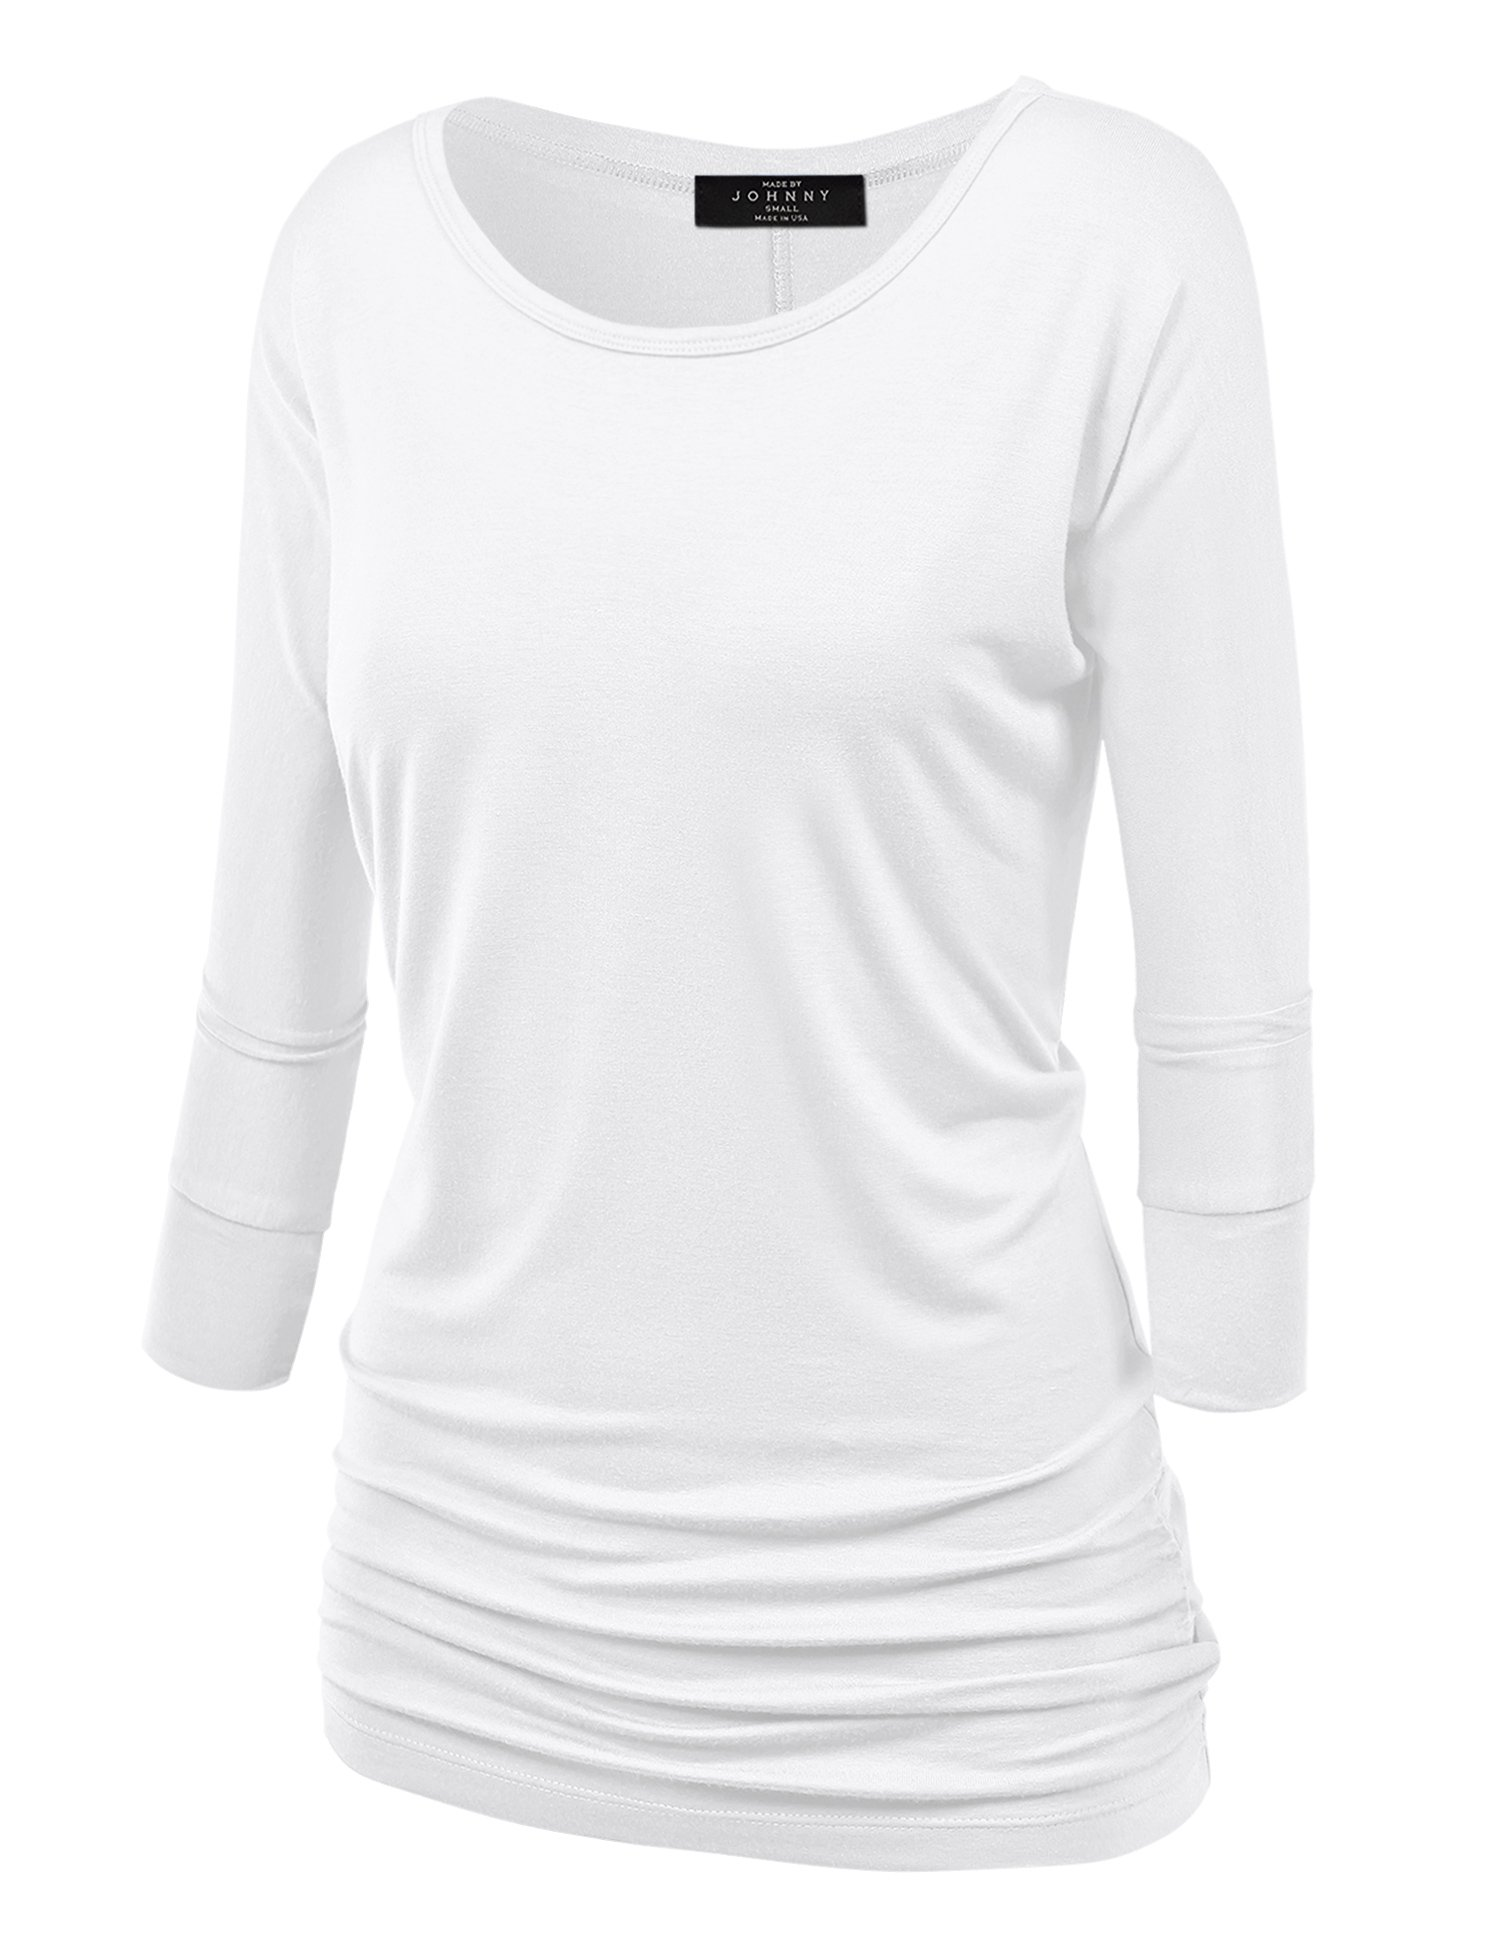 Made By Johnny WT822 Womens 3/4 Sleeve with Drape Top M White